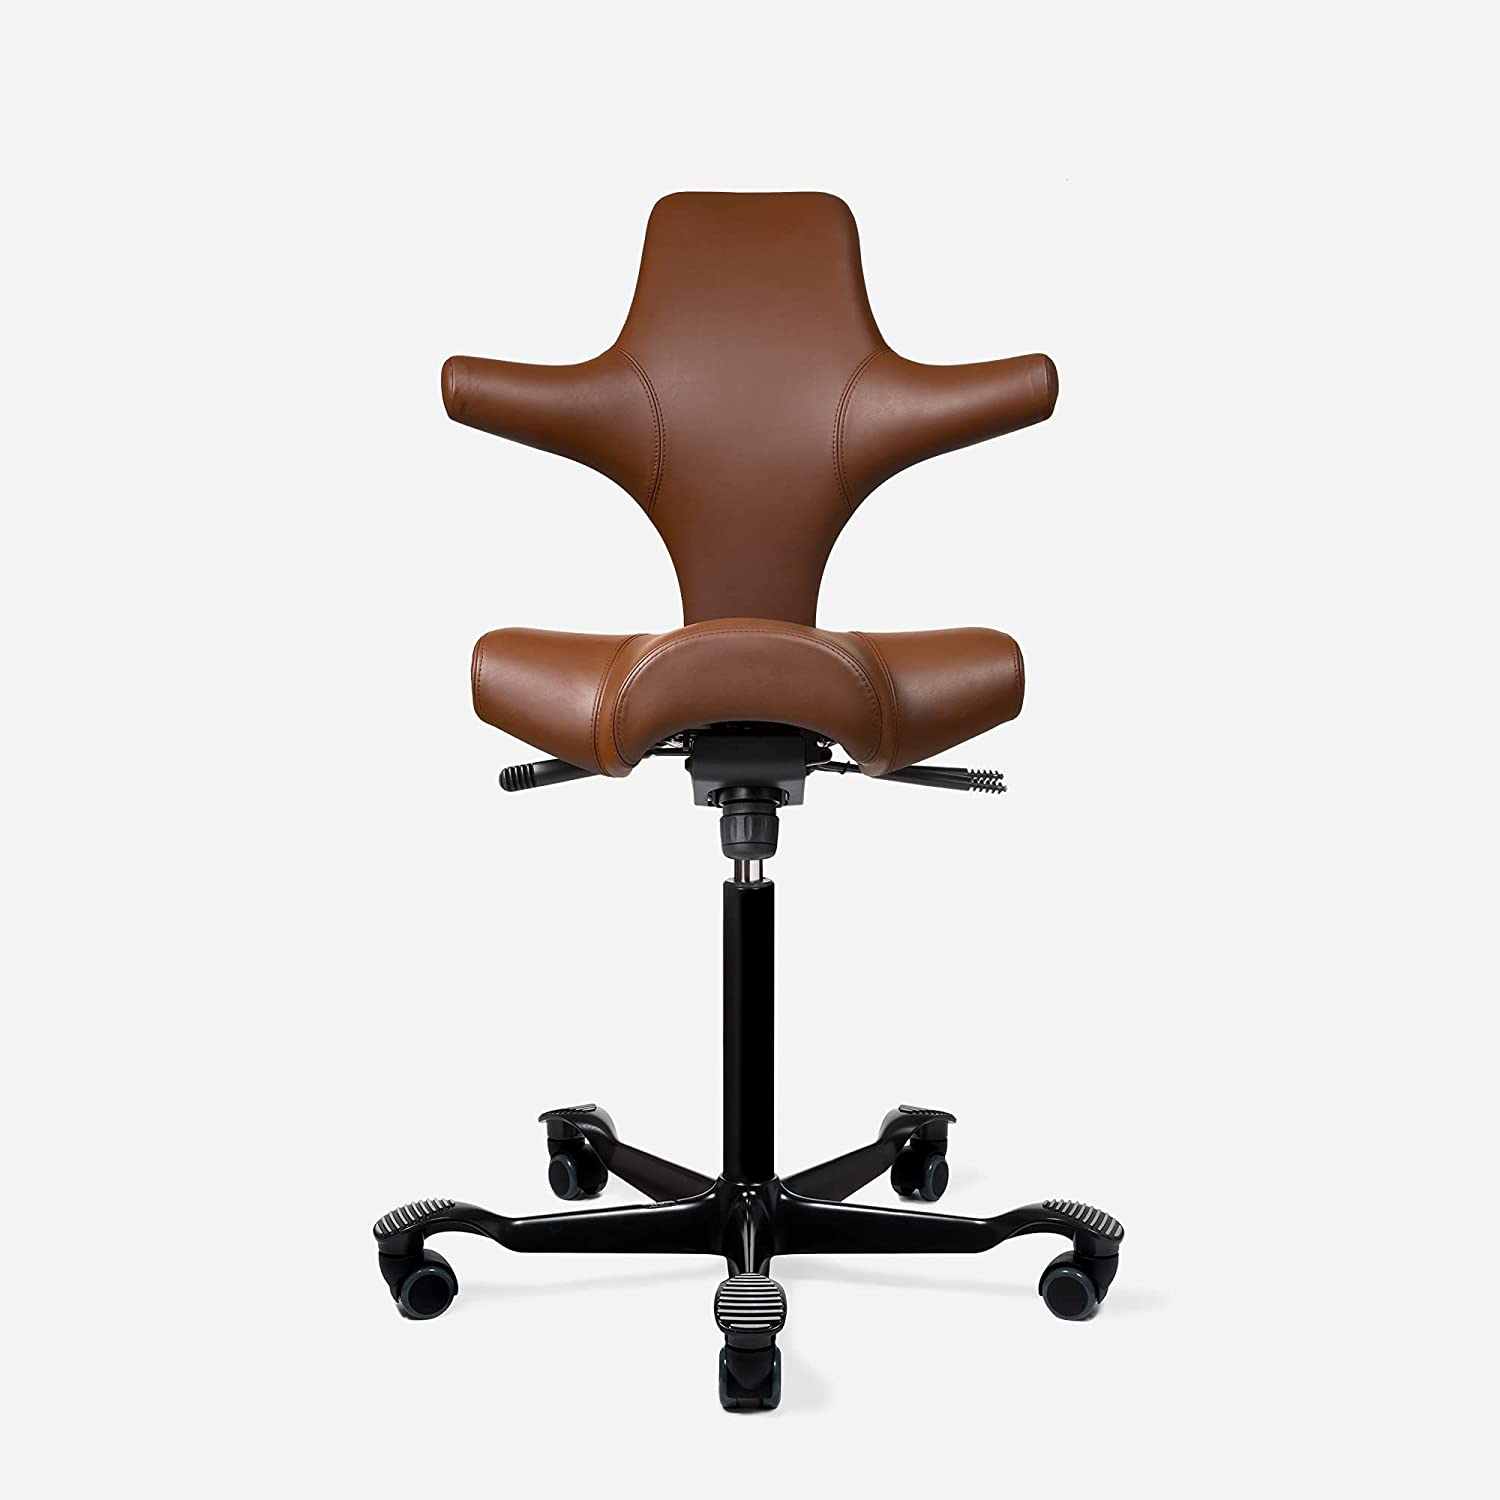 HAG Capisco Adjustable Standing Desk NEW before selling Leath Frame Chair Black - Max 61% OFF